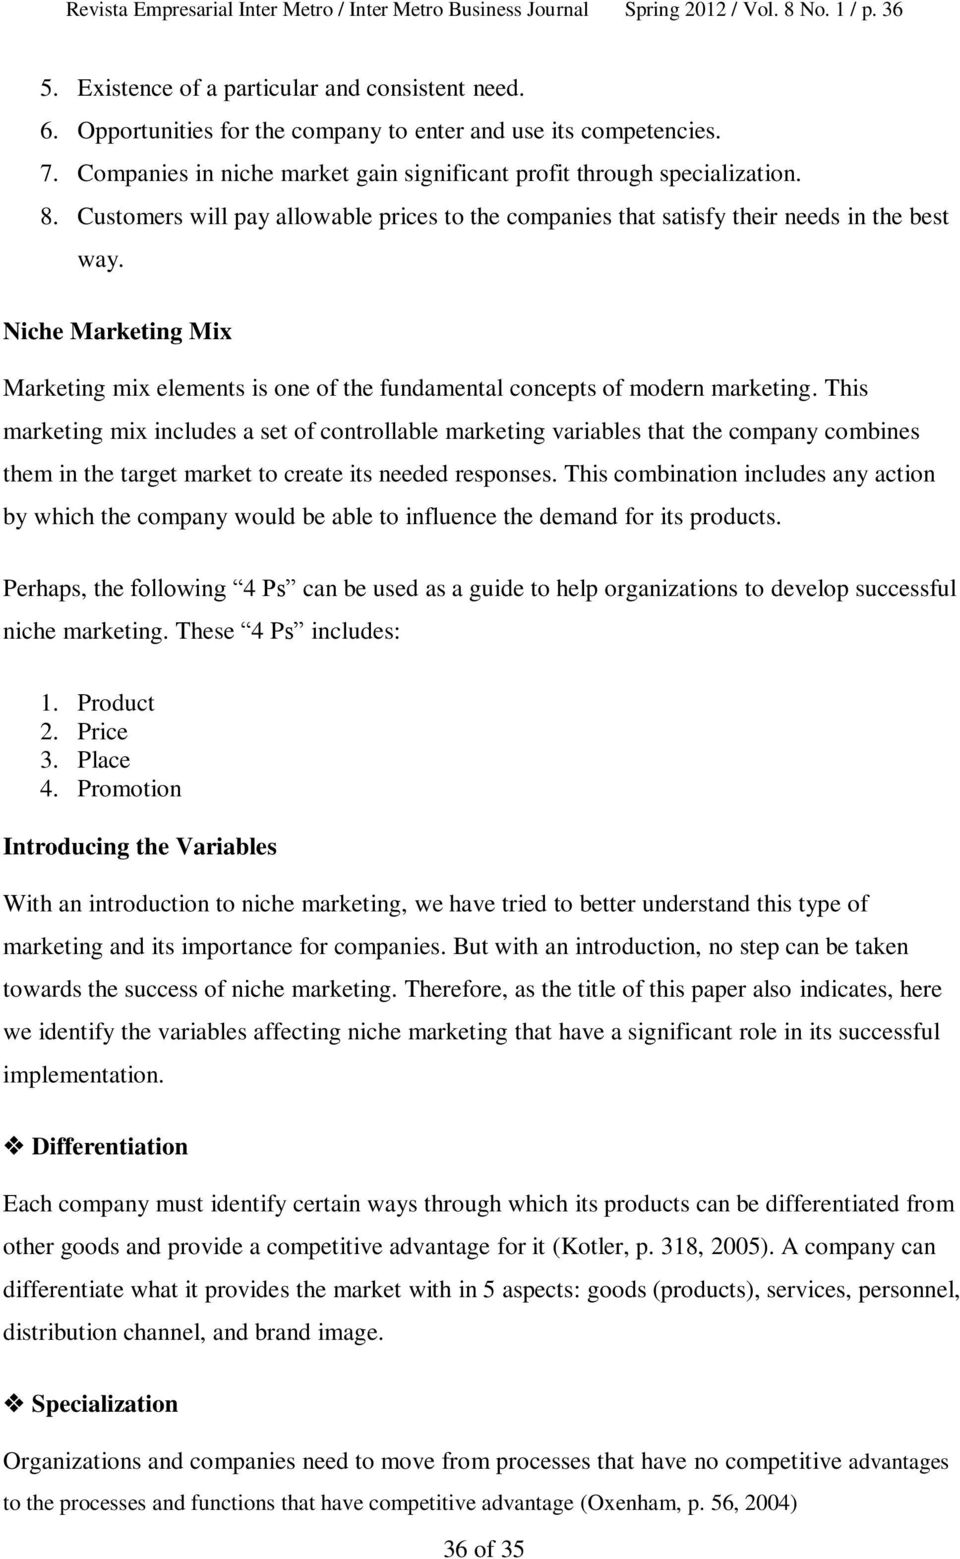 Customers will pay allowable prices to the companies that satisfy their needs in the best way. Niche Marketing Mix Marketing mix elements is one of the fundamental concepts of modern marketing.